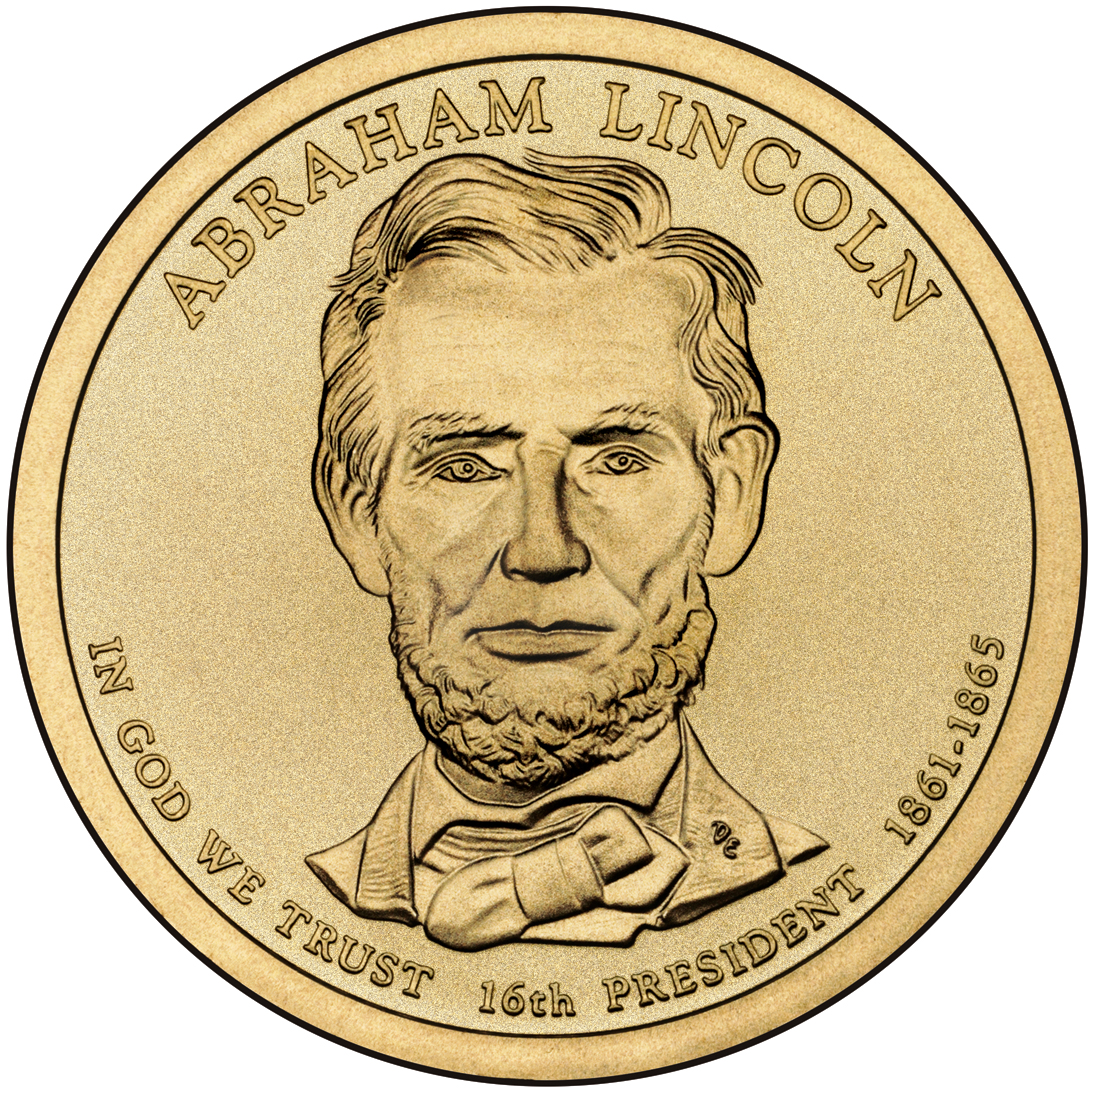 2010 Lincoln Presidential $1 Coin Released | World Mint Coins